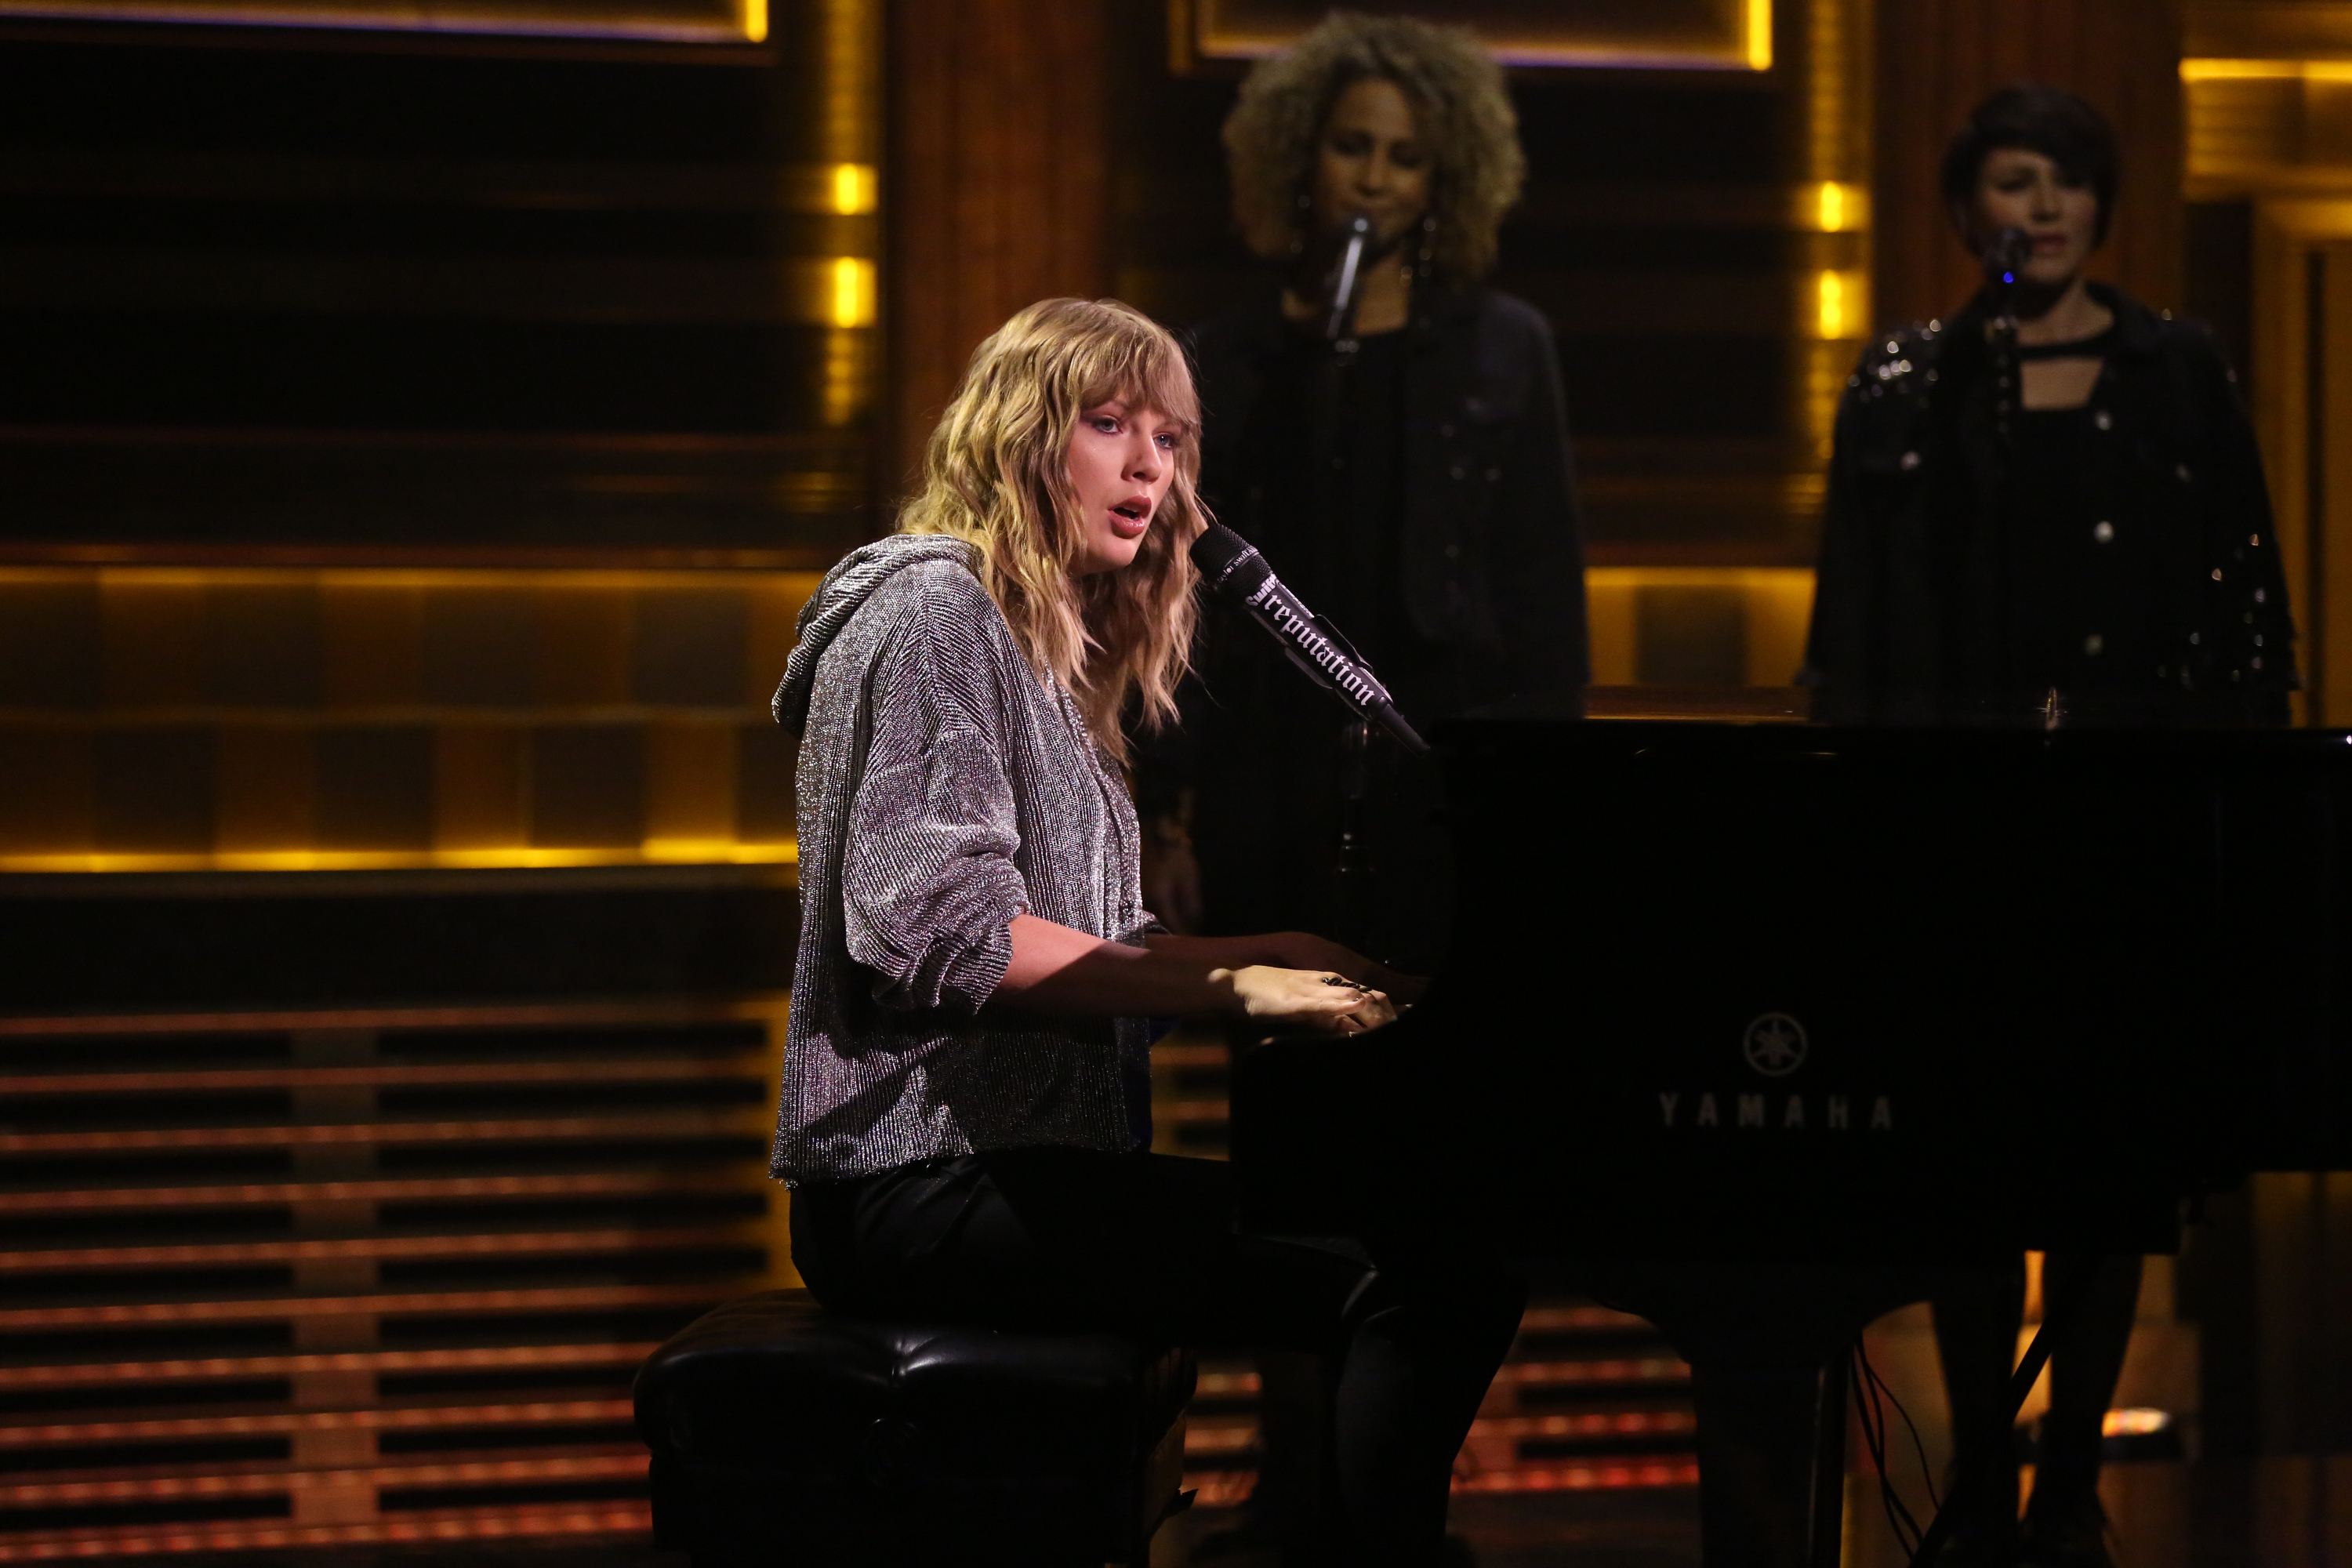 Taylor-Swifts-Surprise-Tonight-Show-Performance-Leaves-Jimmy-Fallon-In-Tears